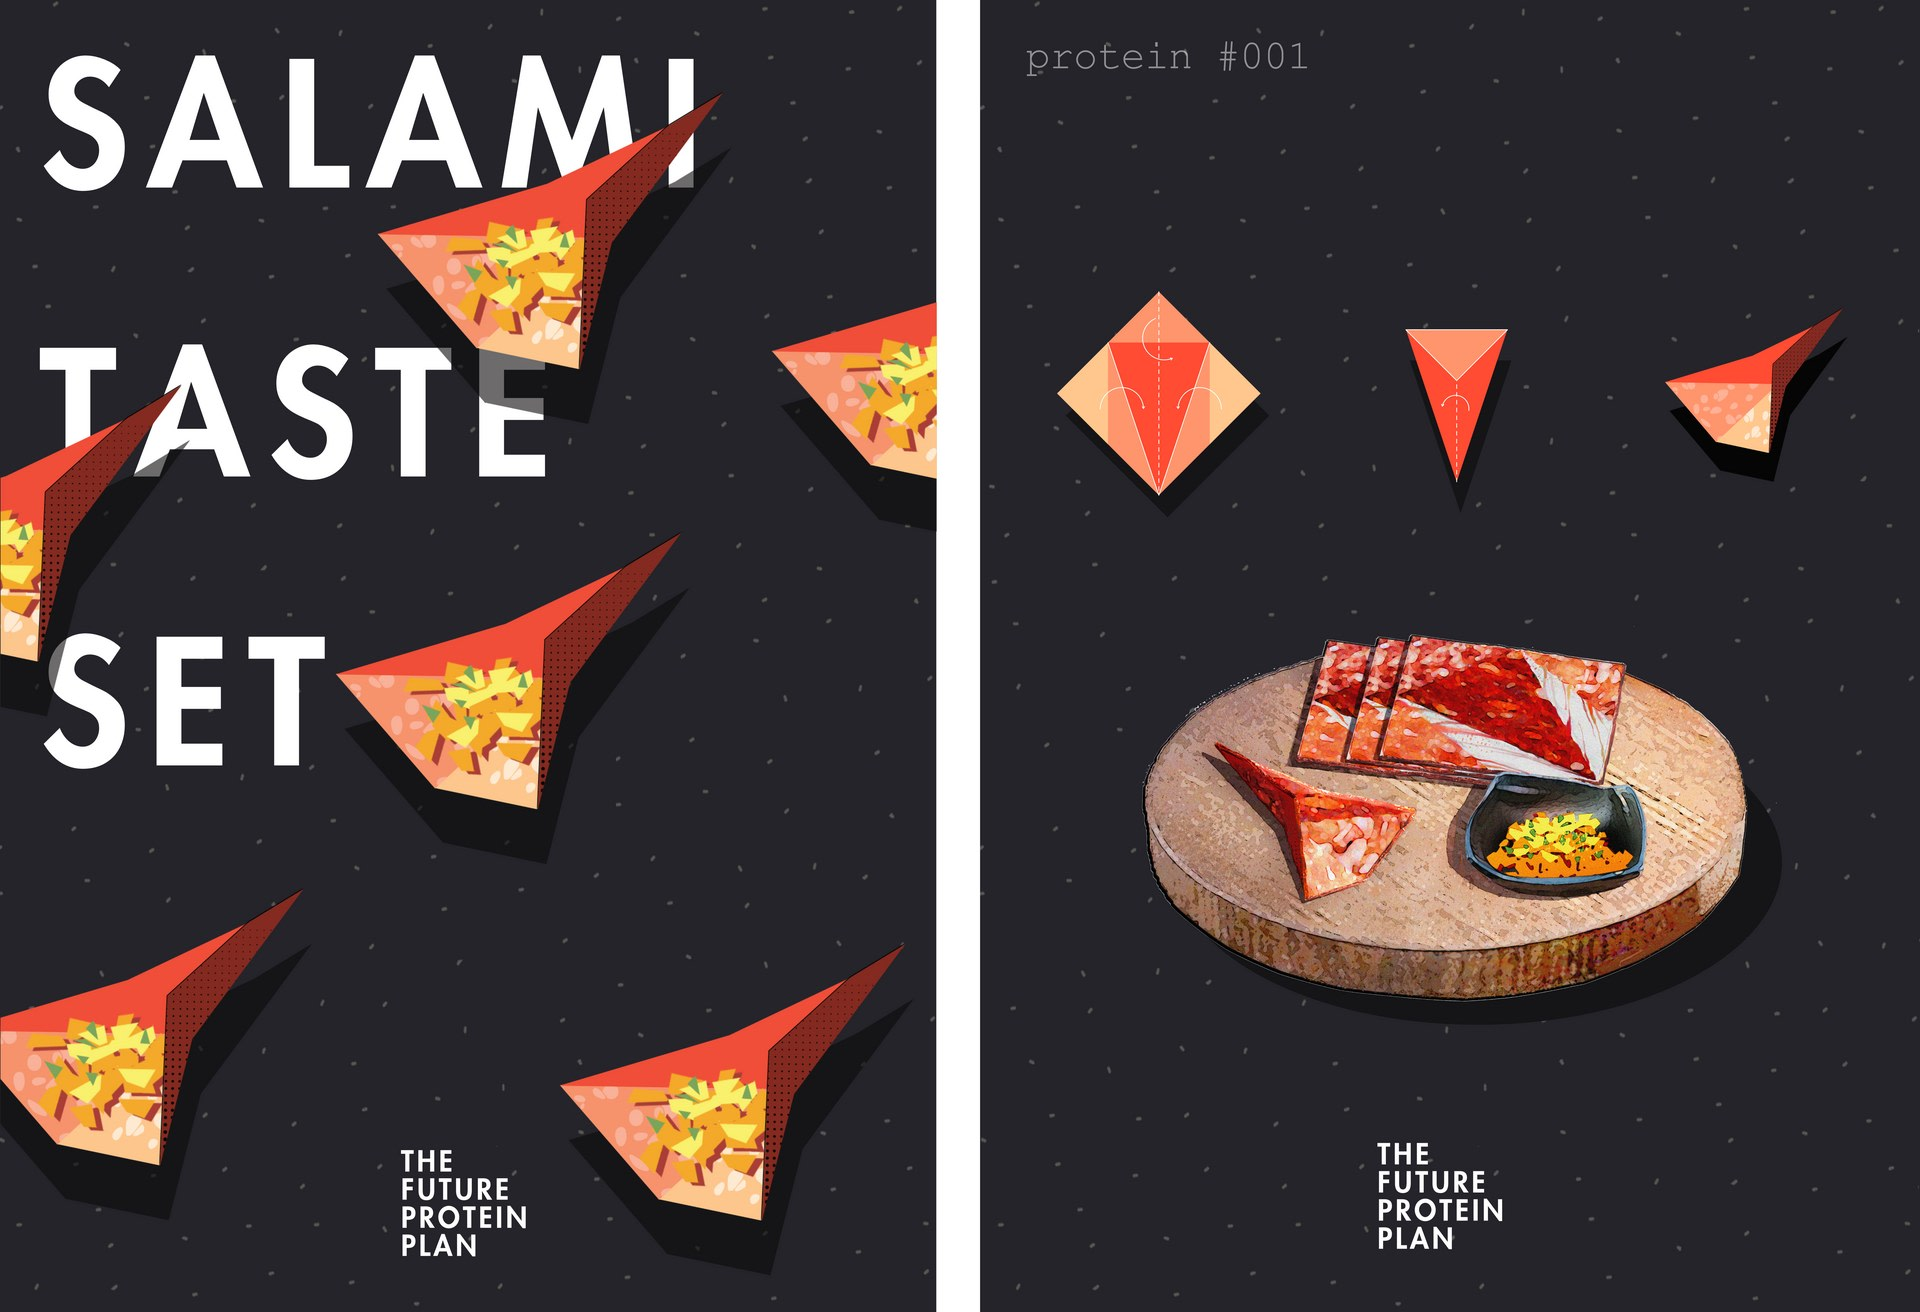 Cellular recipe 1 - salami taste set